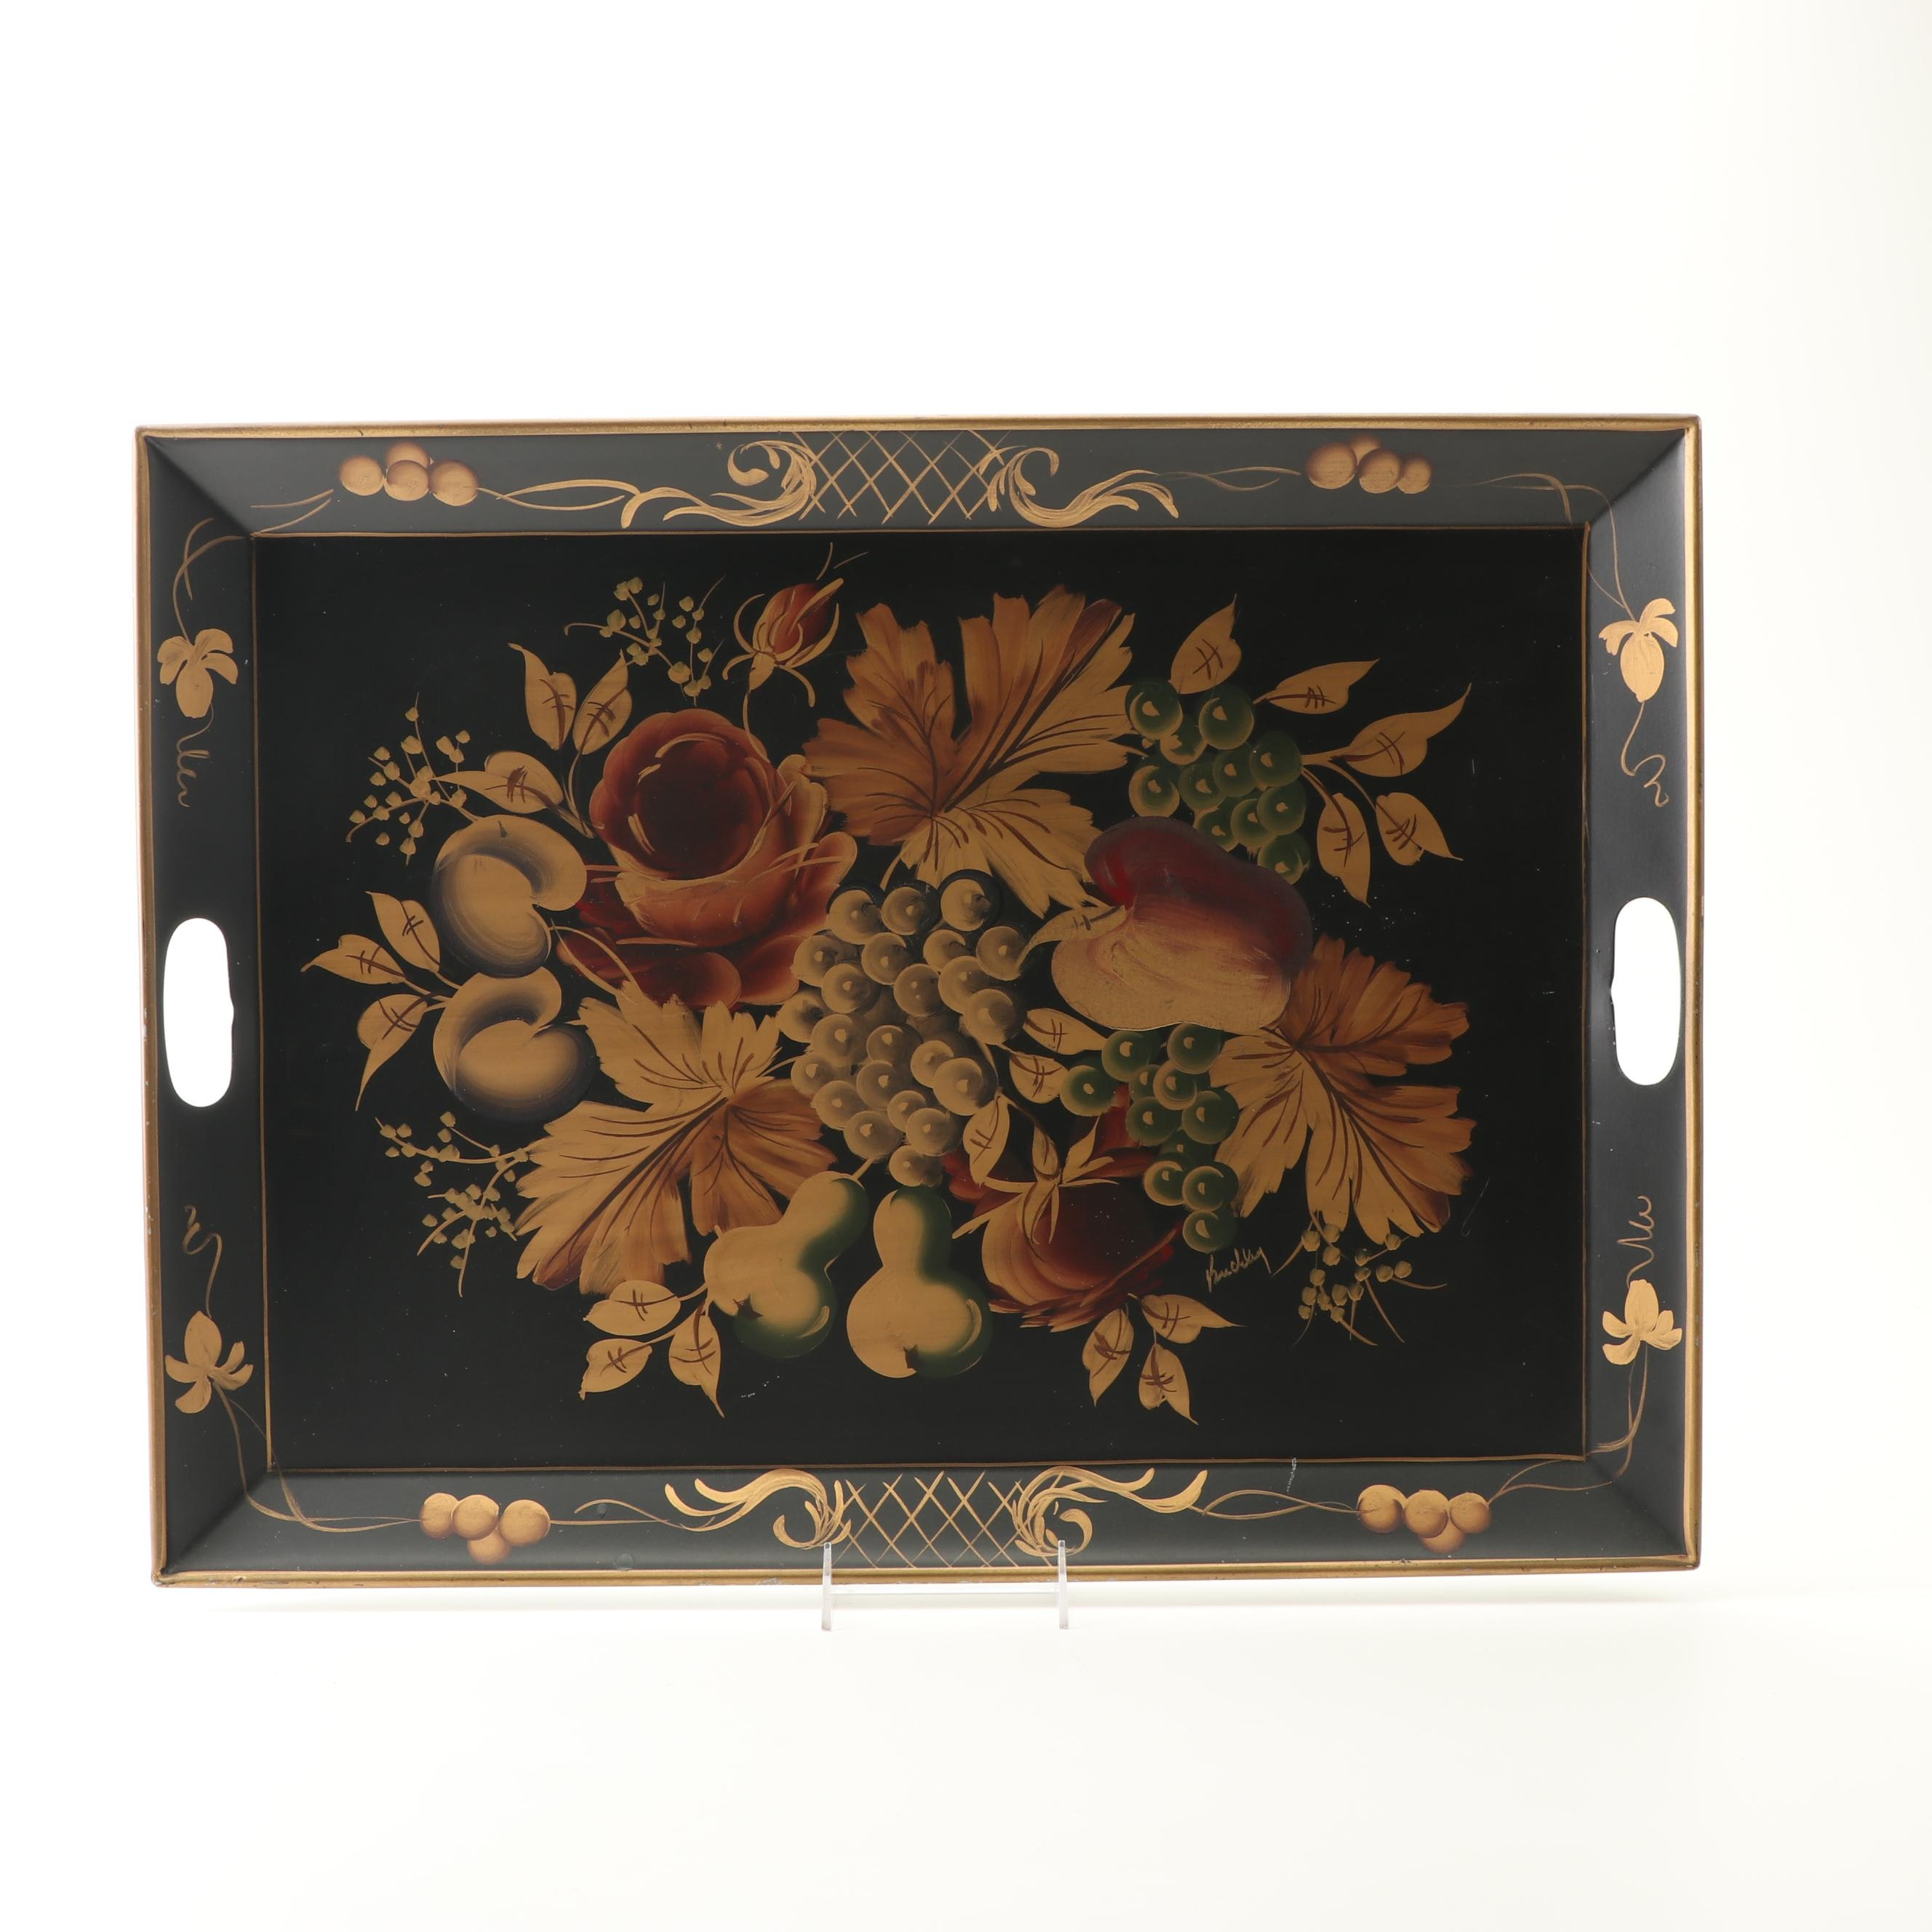 Pilgrim Art Hand Decorated Tole Tray by Buckley